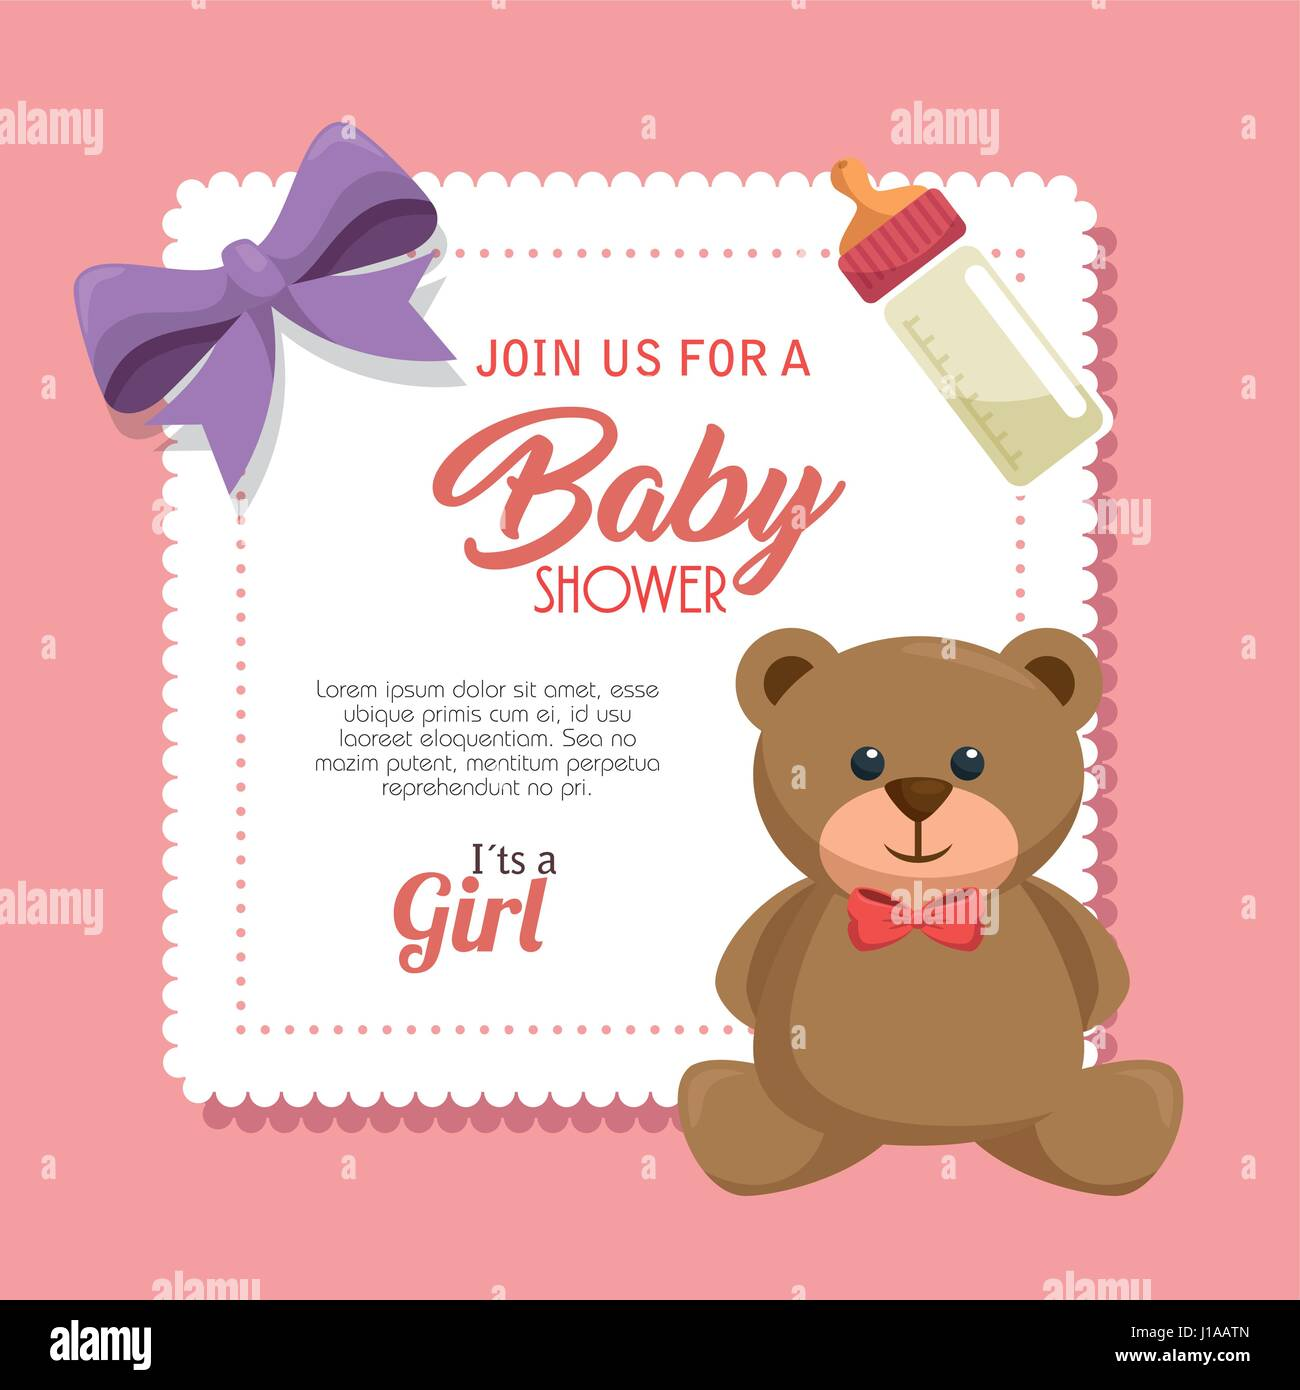 baby shower invitation card Stock Vector Art & Illustration, Vector ...